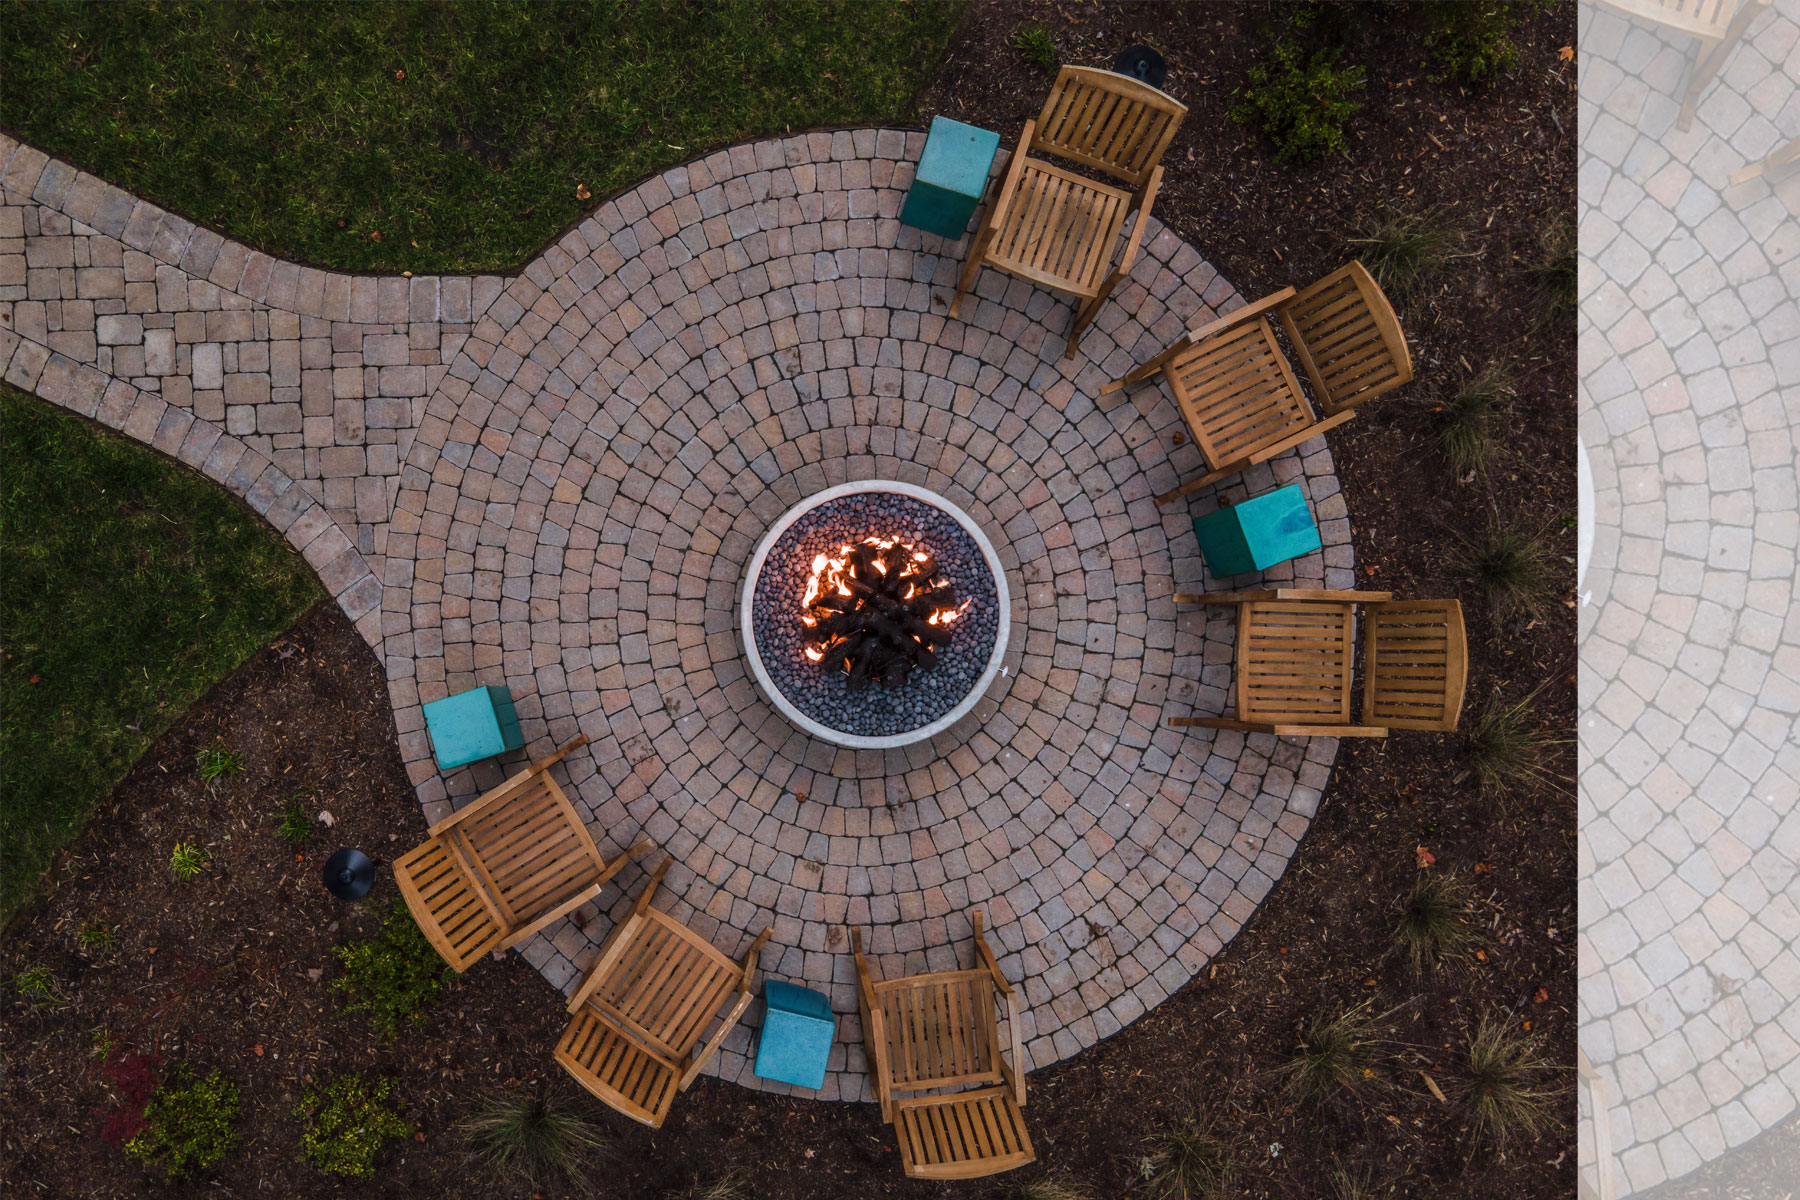 Mountain home firepit with cobblestone pavers in circular pattern with walkway